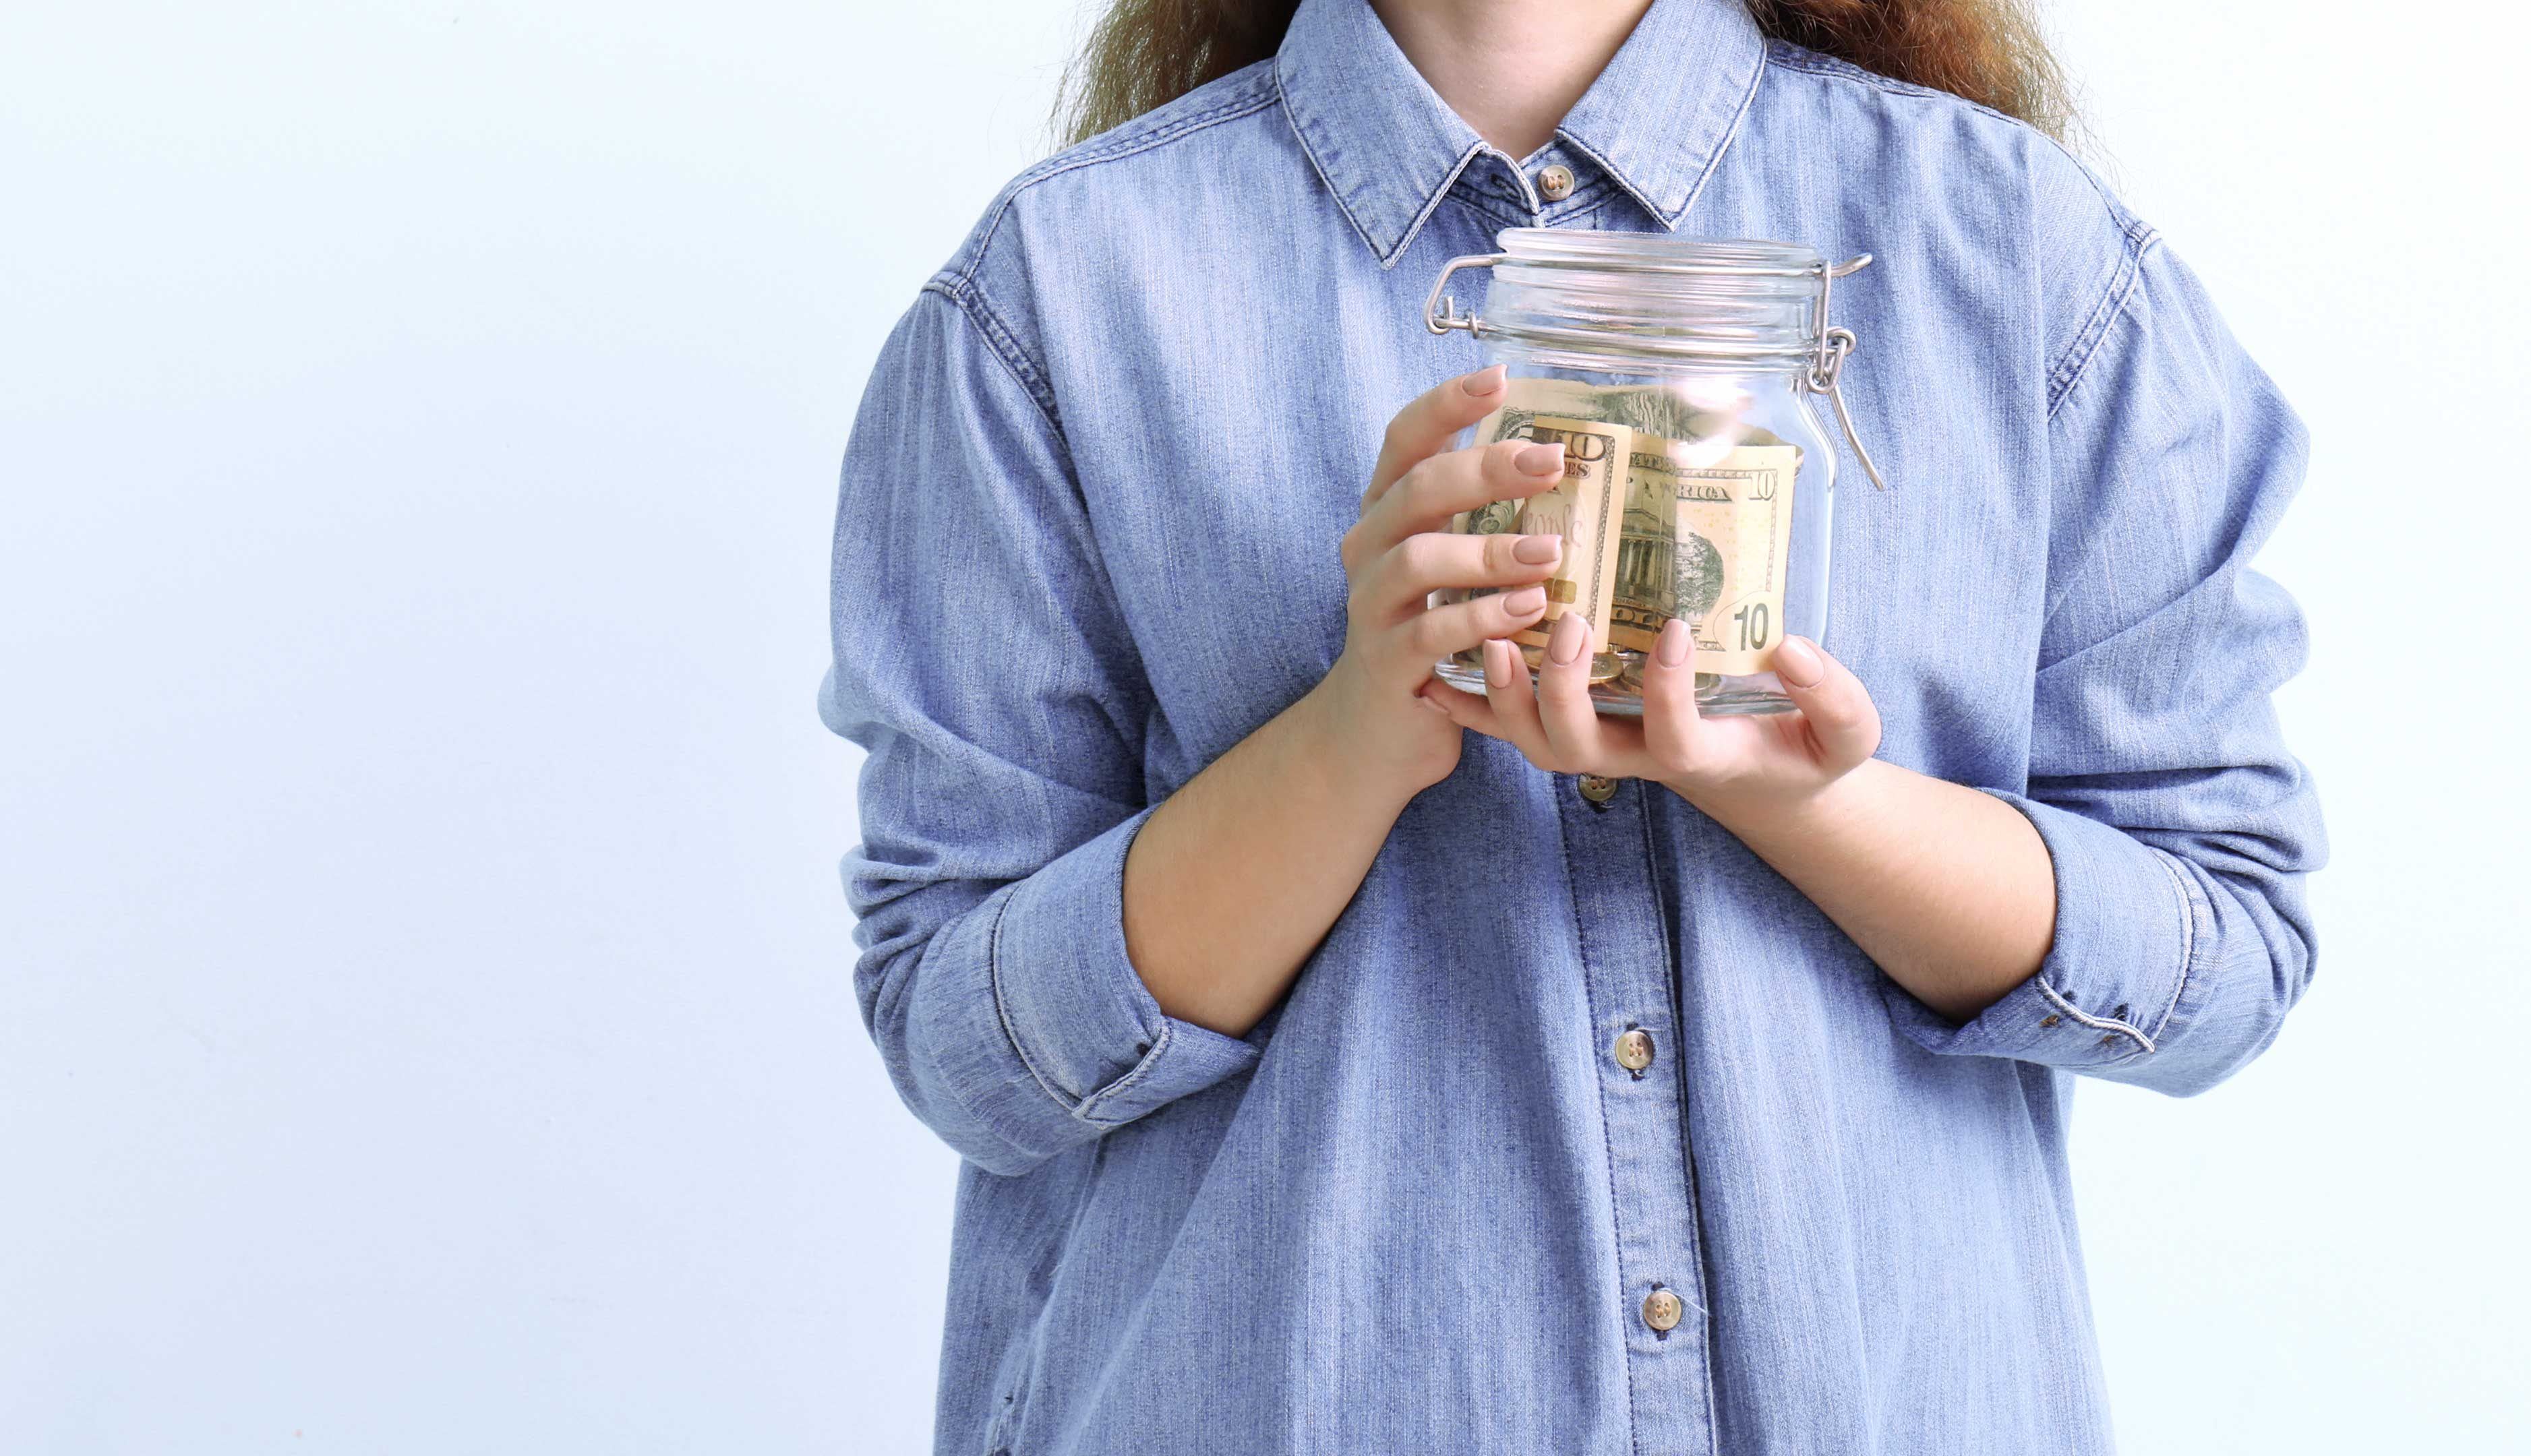 Girl holding spare change in a jar.